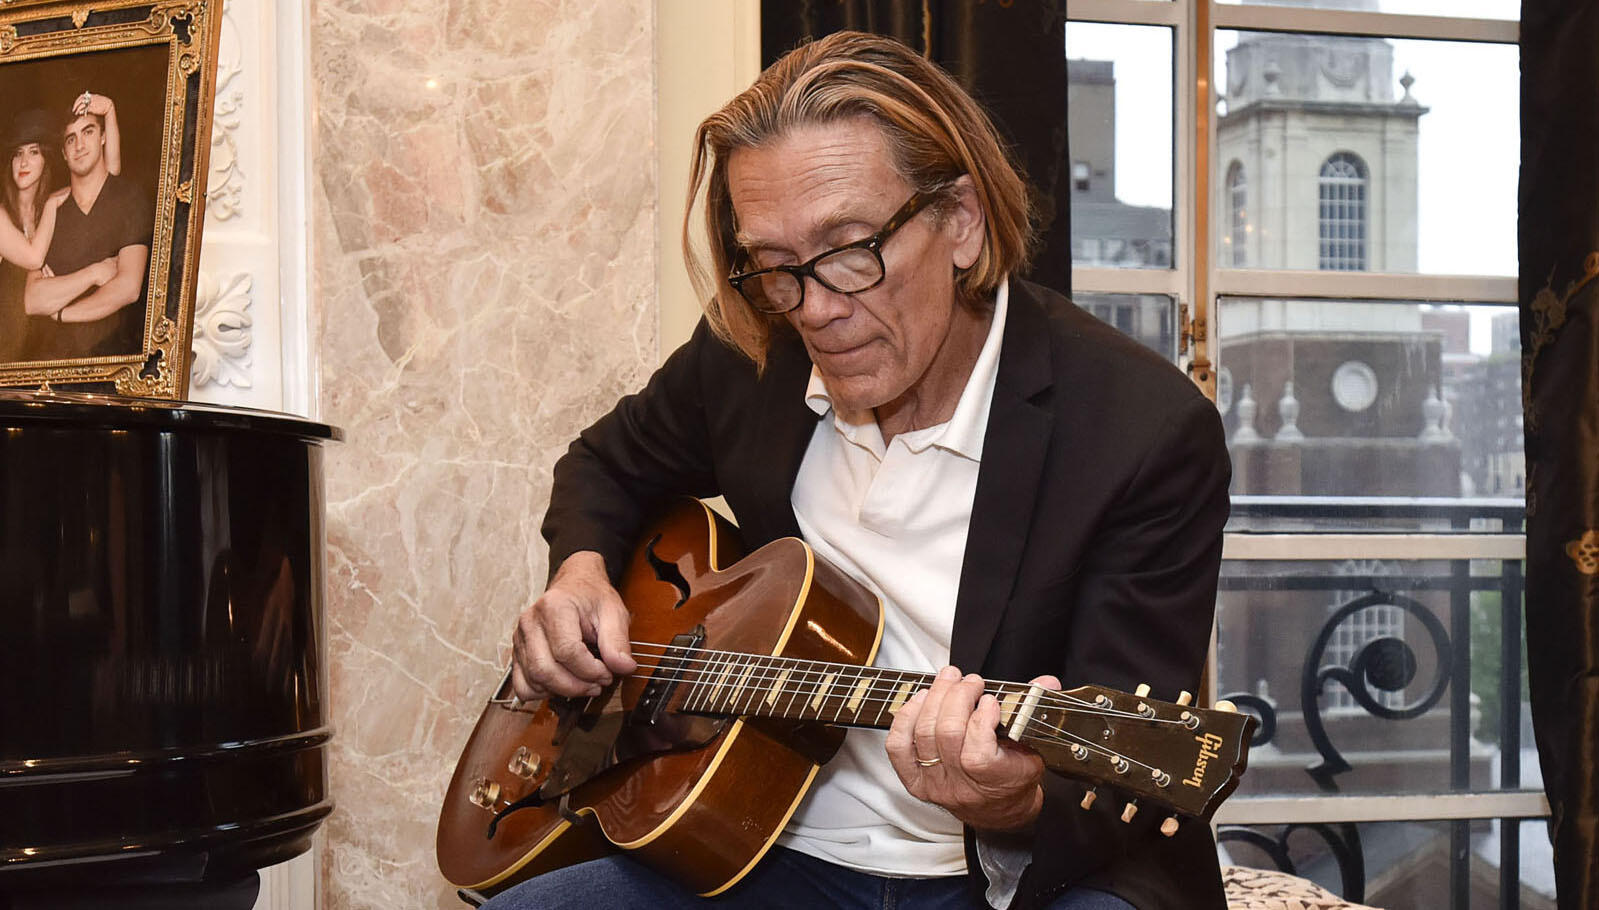 G.E. Smith Talks New 'Stony Hill' LP, Working At SNL, David Bowie's Smile